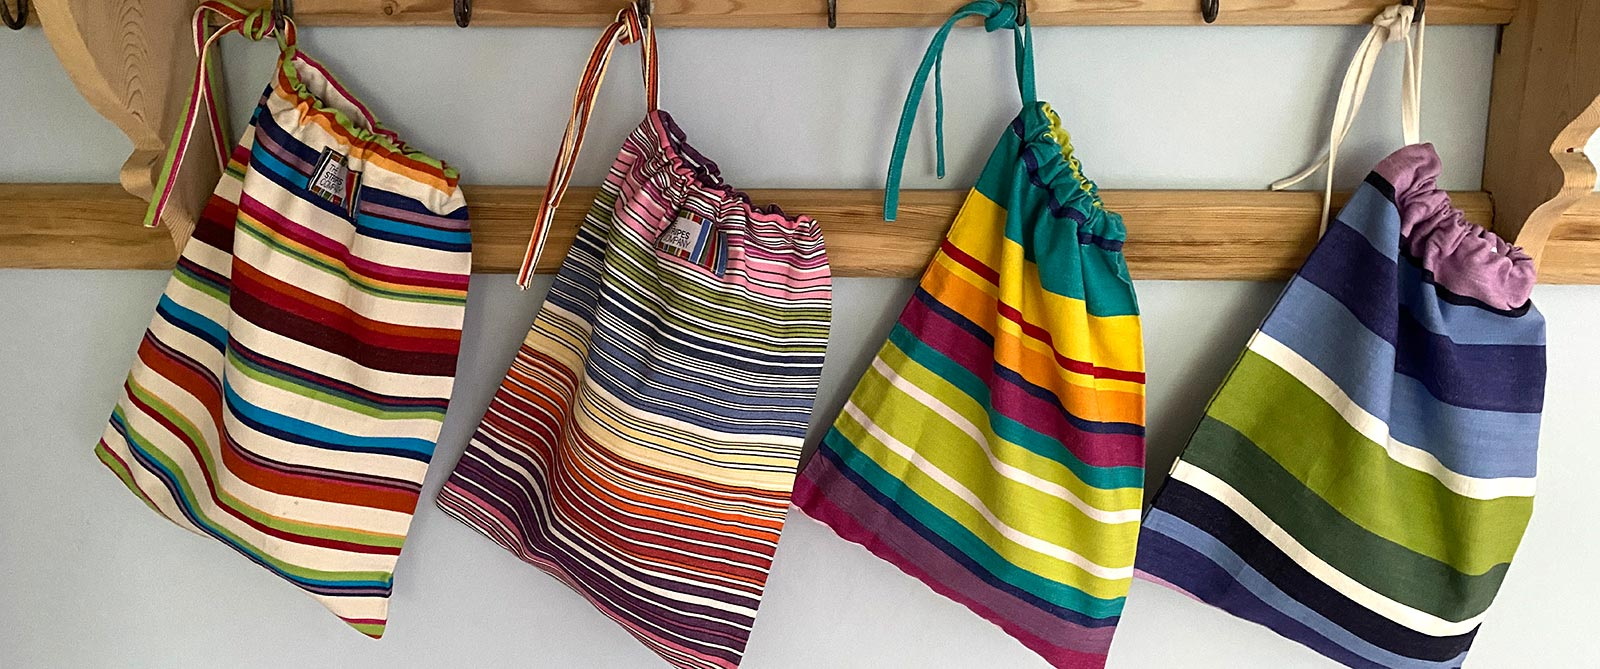 Pack of 4 Drawstring Shoe Bags | Striped Shoe Bags